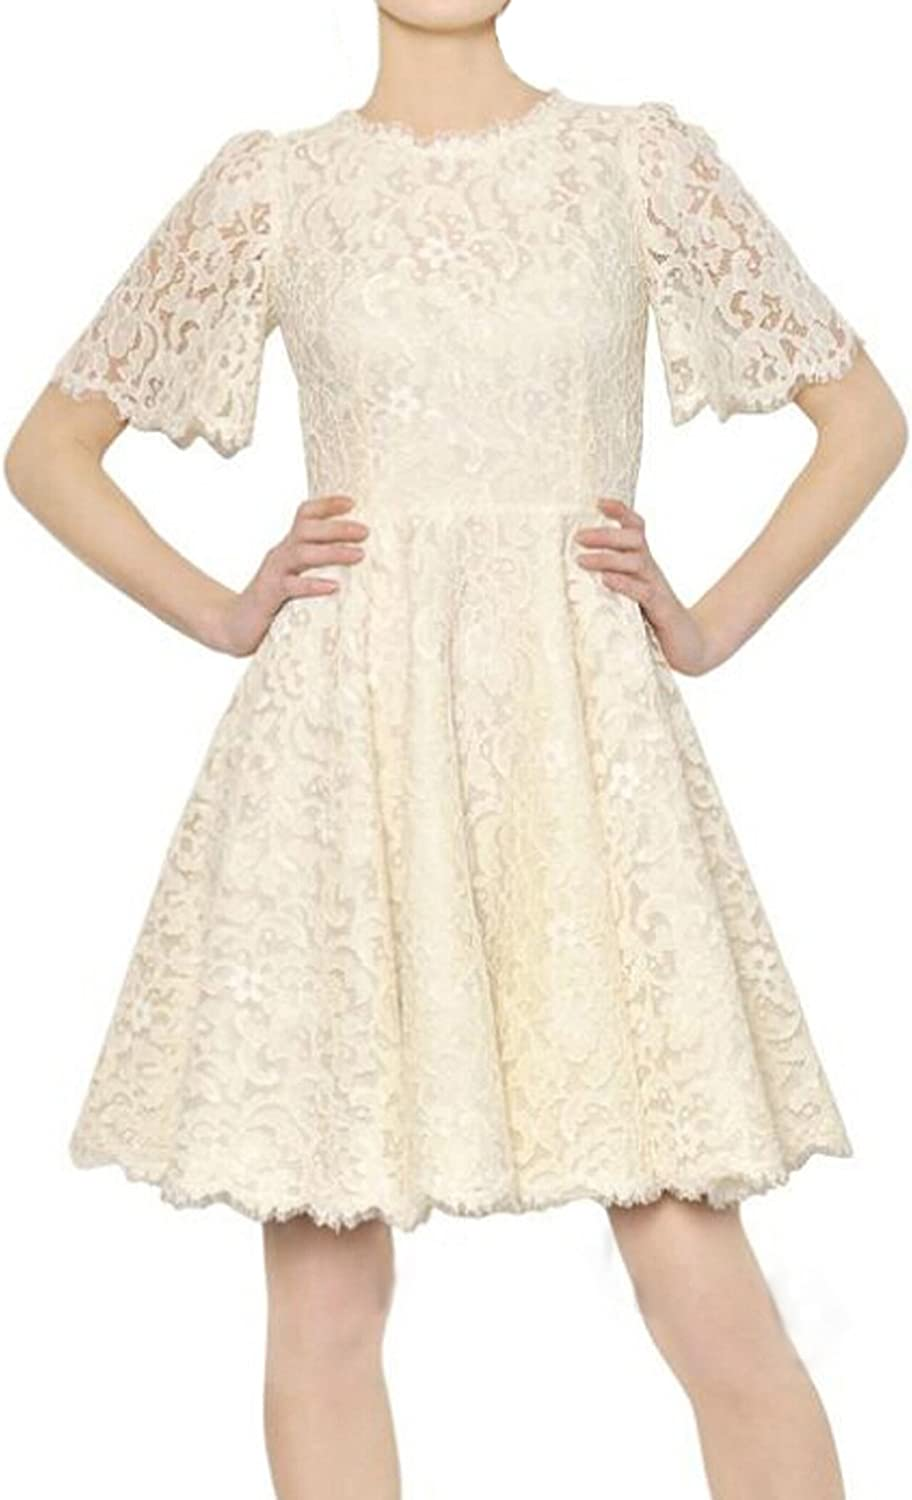 Muke Women's Half Sleeves Floral Lace Embroidery Princess Dress